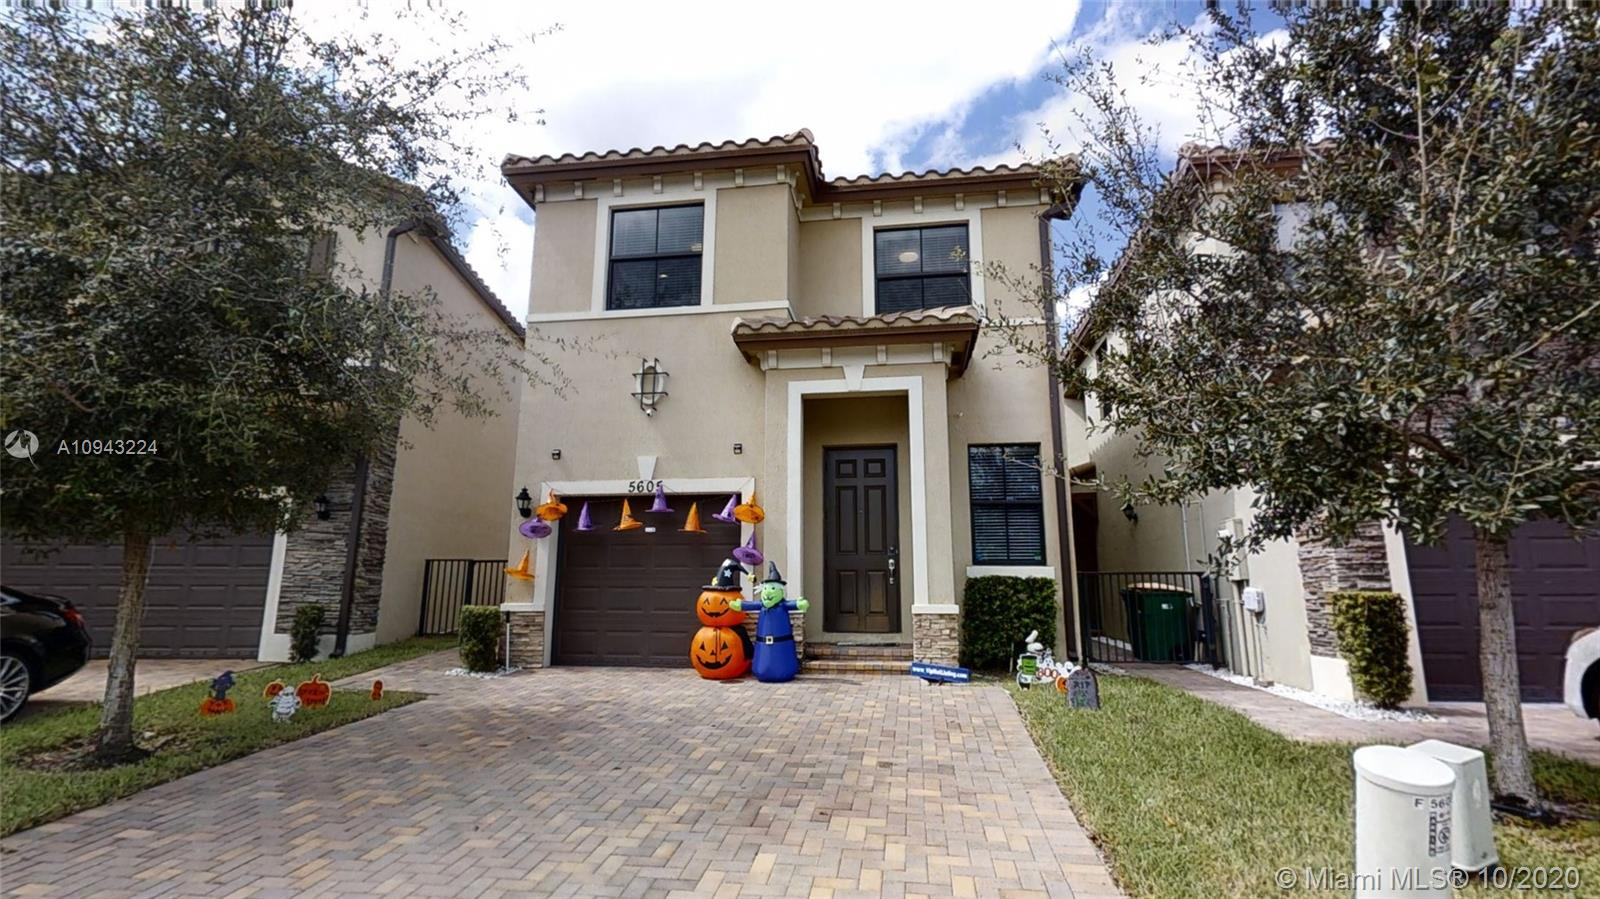 5605 NW 48th Ln, Tamarac, Florida 33319, 4 Bedrooms Bedrooms, ,3 BathroomsBathrooms,Residential,For Sale,5605 NW 48th Ln,A10943224